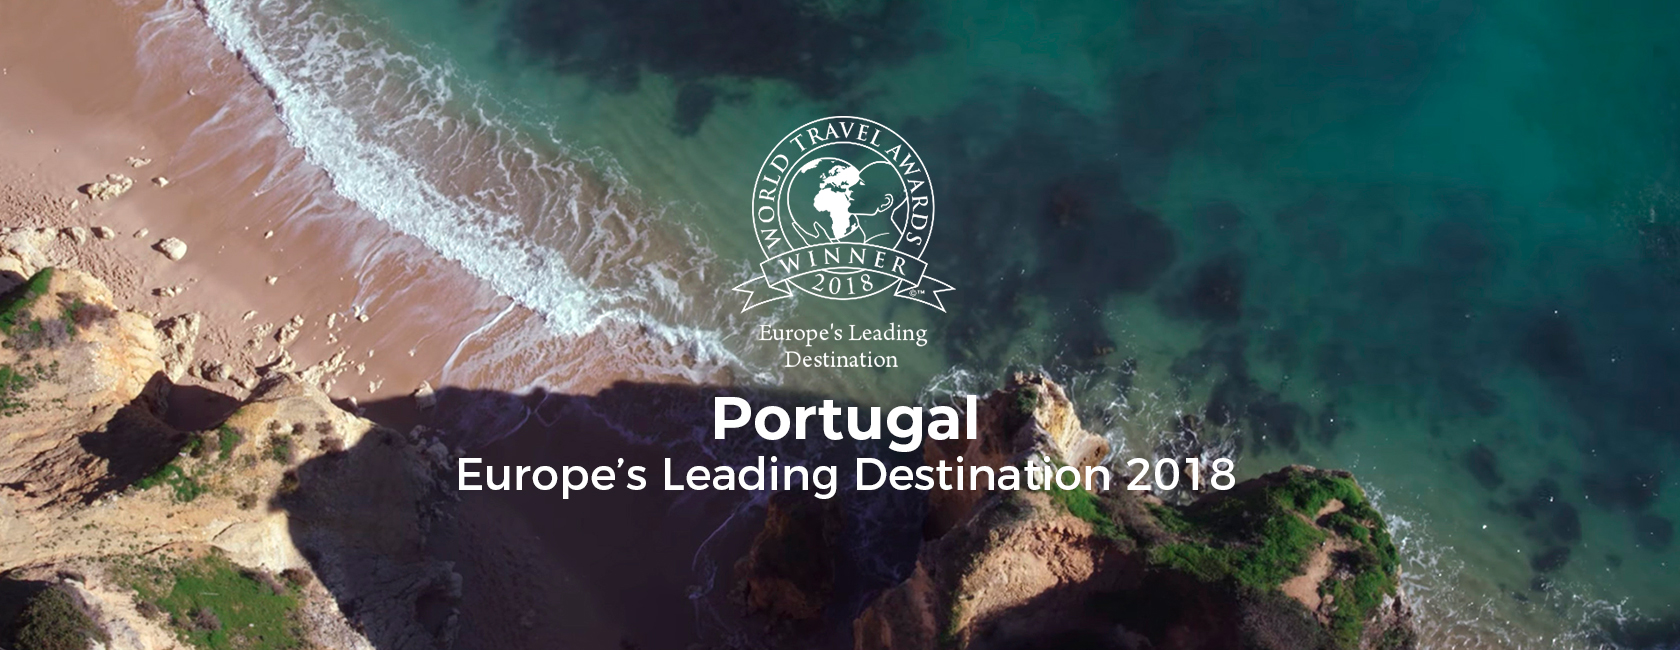 Portugal, Europe's Leading Destination